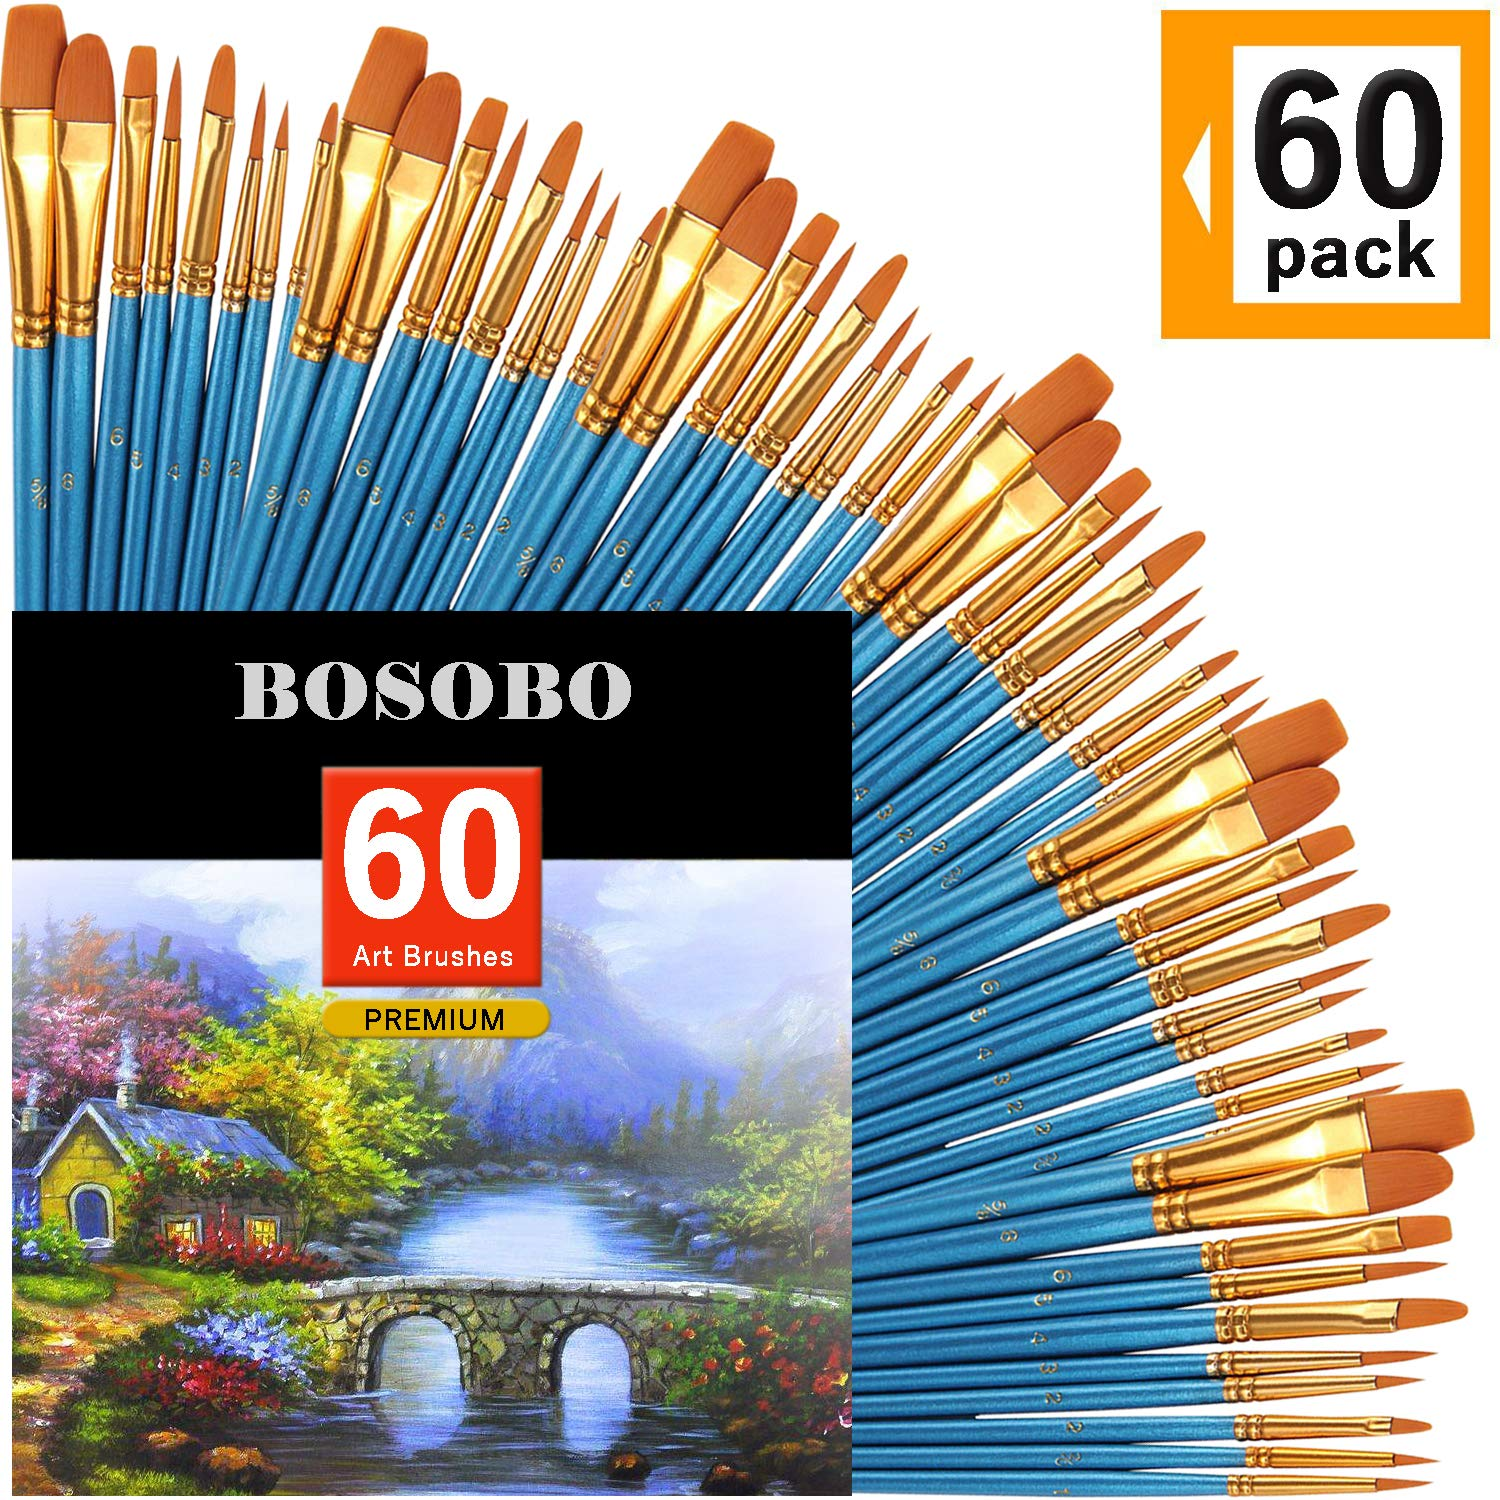 BOSOBO Paint Brush Sets, 6 Pack 60 Pcs Pointed-Round Tip Paintbrushes Nylon Hair Artist Acrylic Paint Brushes for Acrylic Watercolor Oil, Face Art, Model, Miniature Detailing & Rock Painting, Blue by BOSOBO